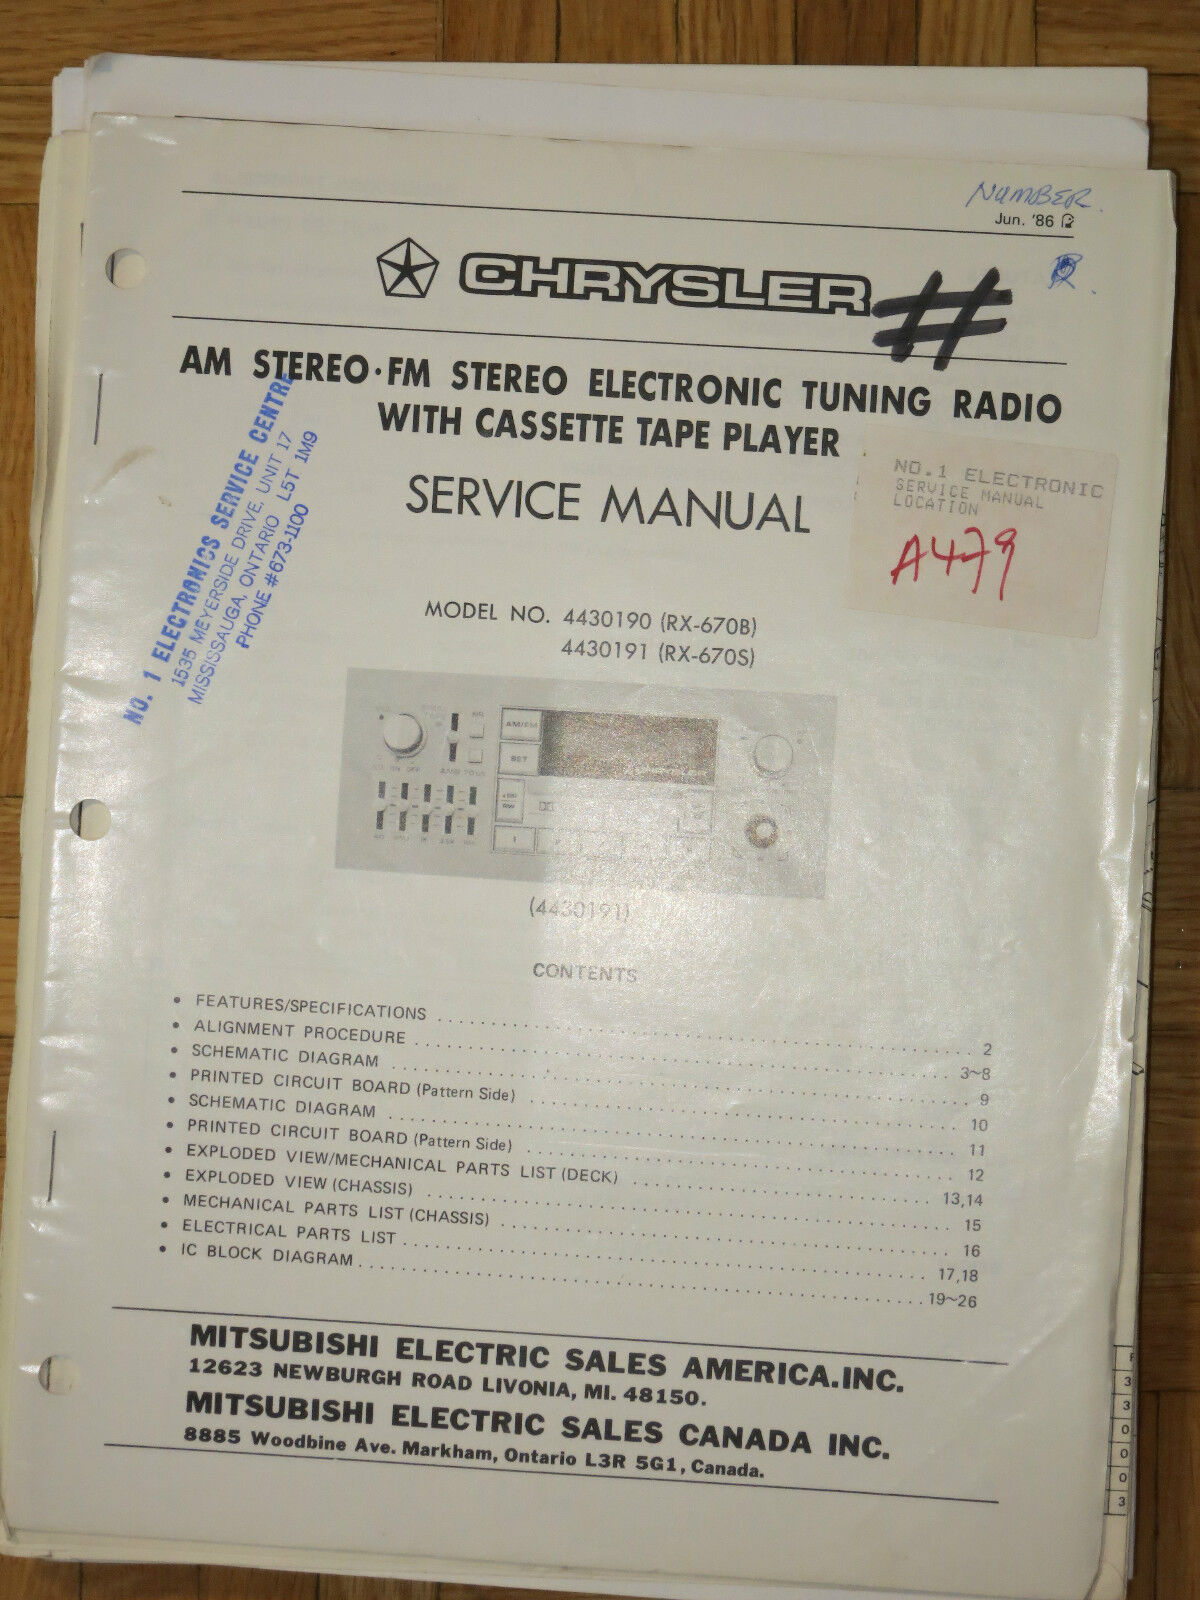 Alpine 3210 Equalizer Wiring Diagram Electrical Diagrams Various Car Audio Decks Receivers Amplifiers Equalizers Service Rca 22 Flat Input